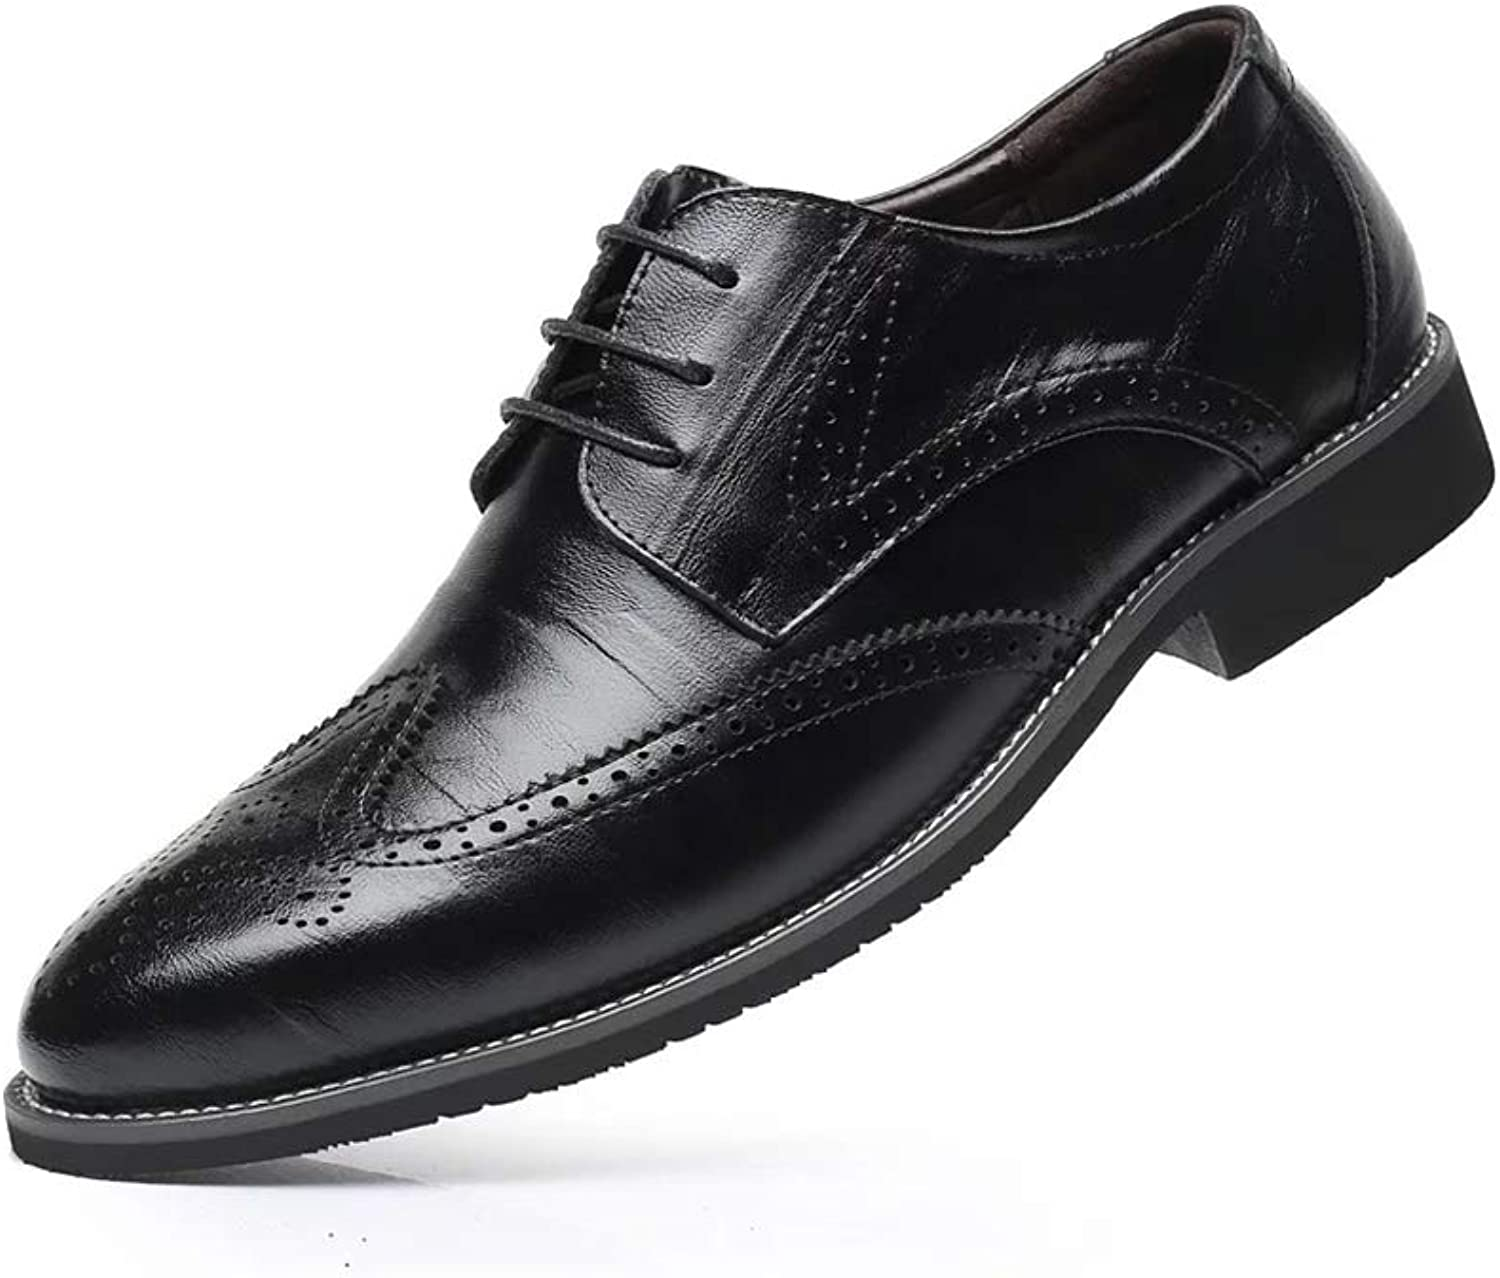 Duberess Men's Brogue Perforated Burnished Toe Handmade Leather Wing-tip Lace up Oxford Dress shoes